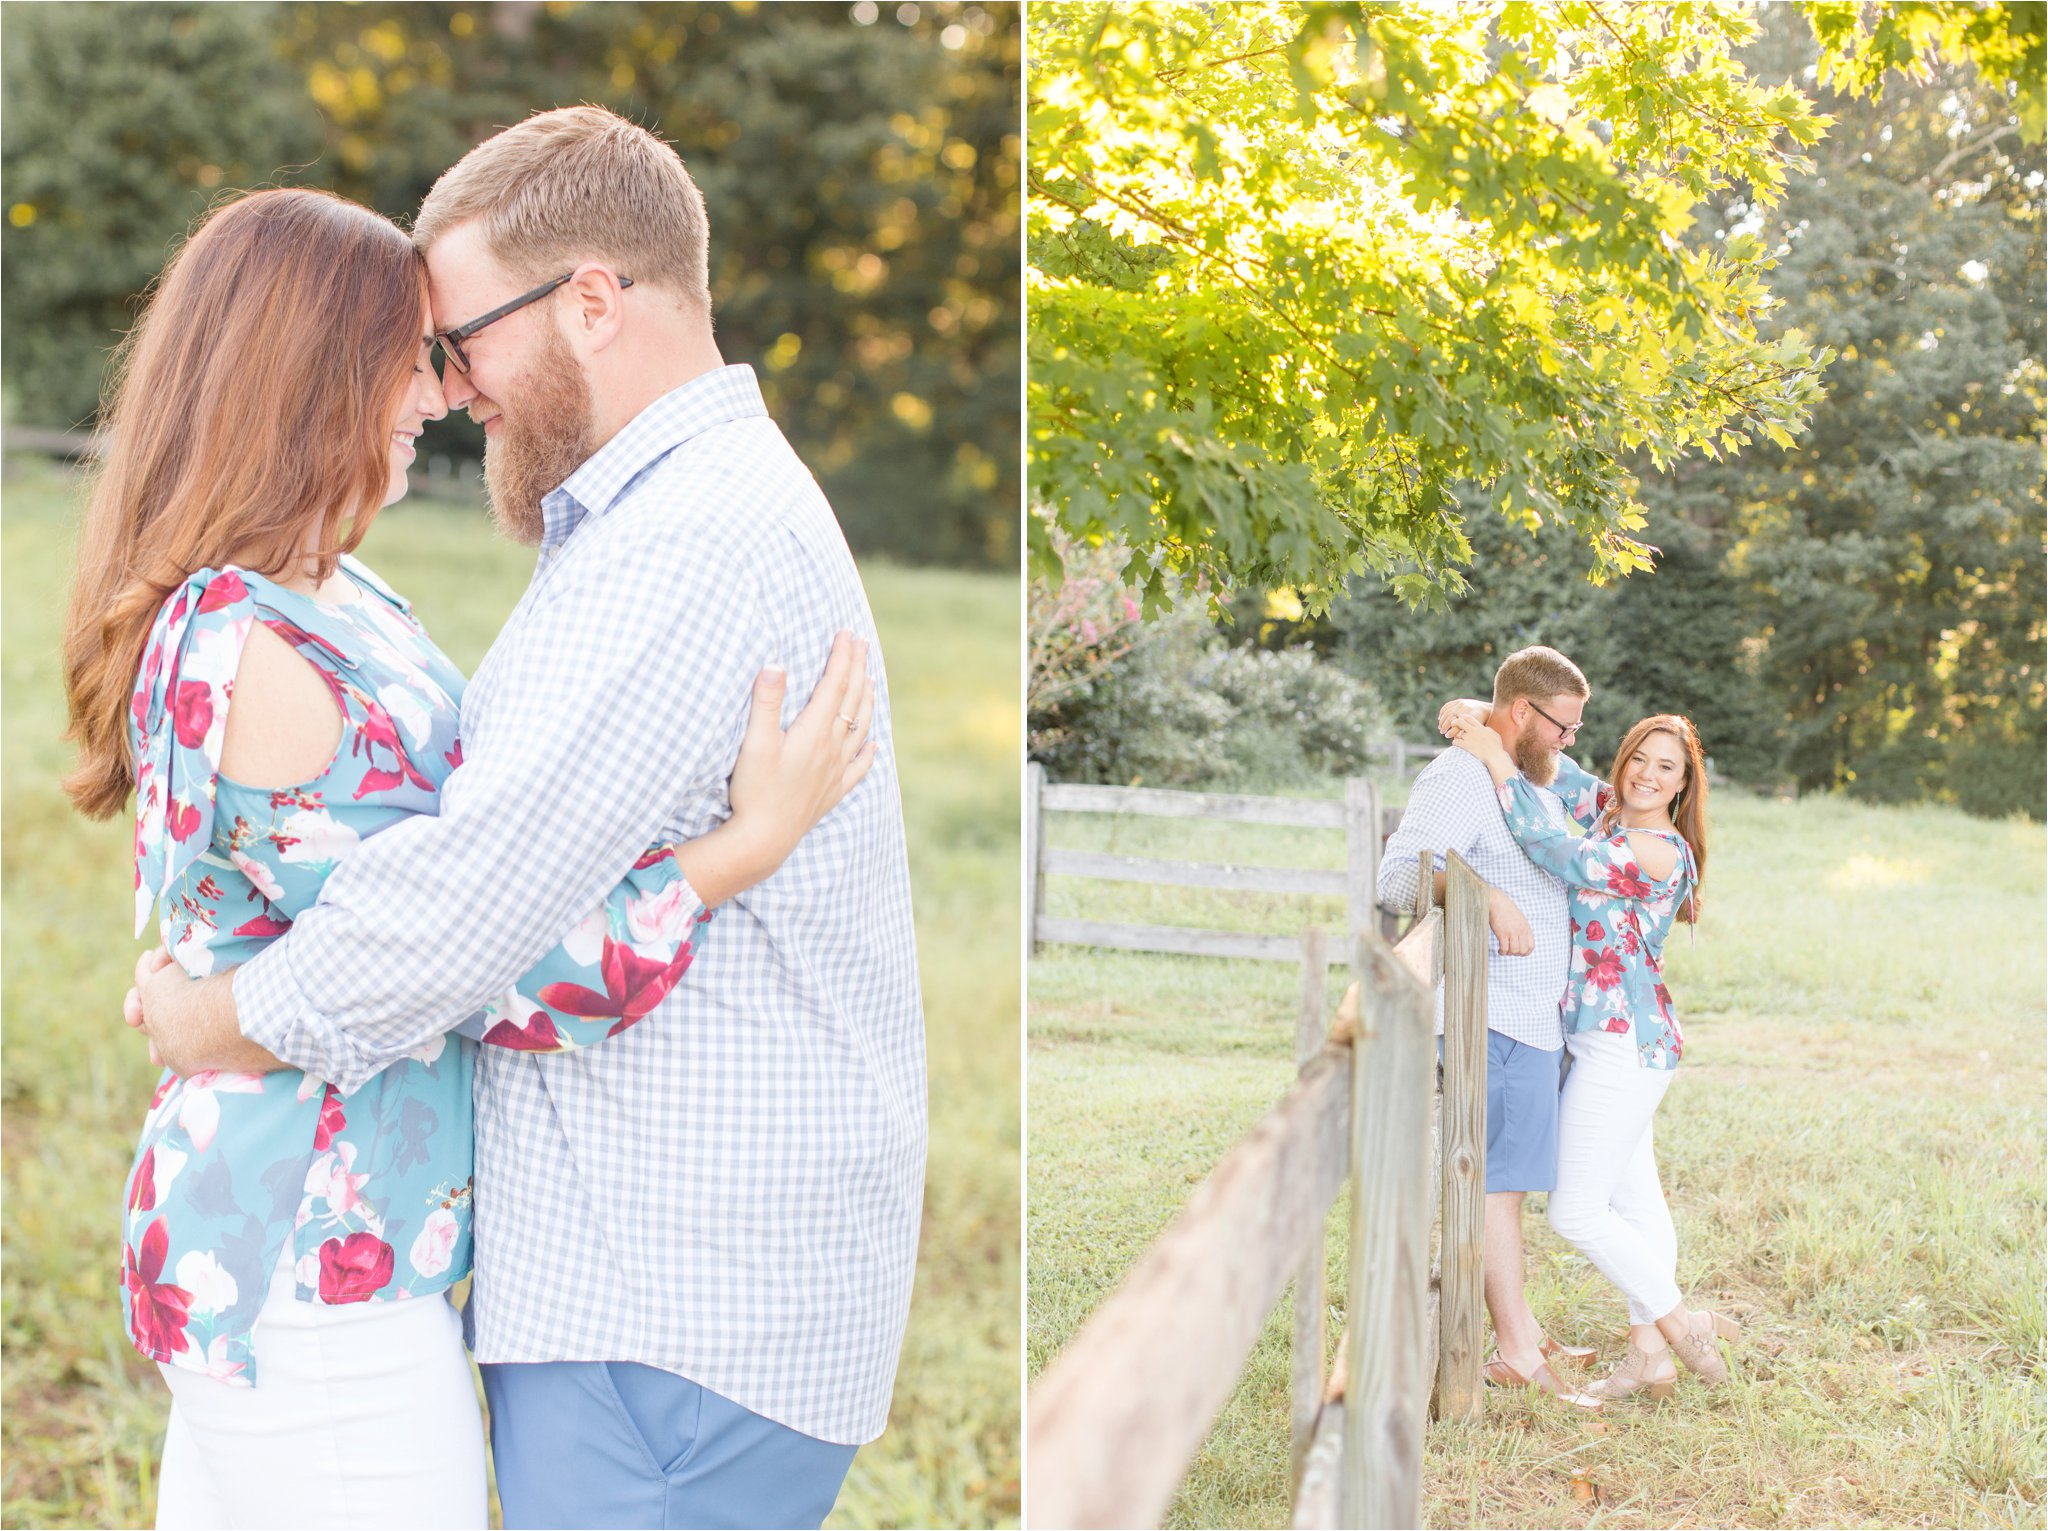 Greenville, SC Engagement Session | Field Engagement Session | South Carolina Wedding Photography | Christa Rene Photography